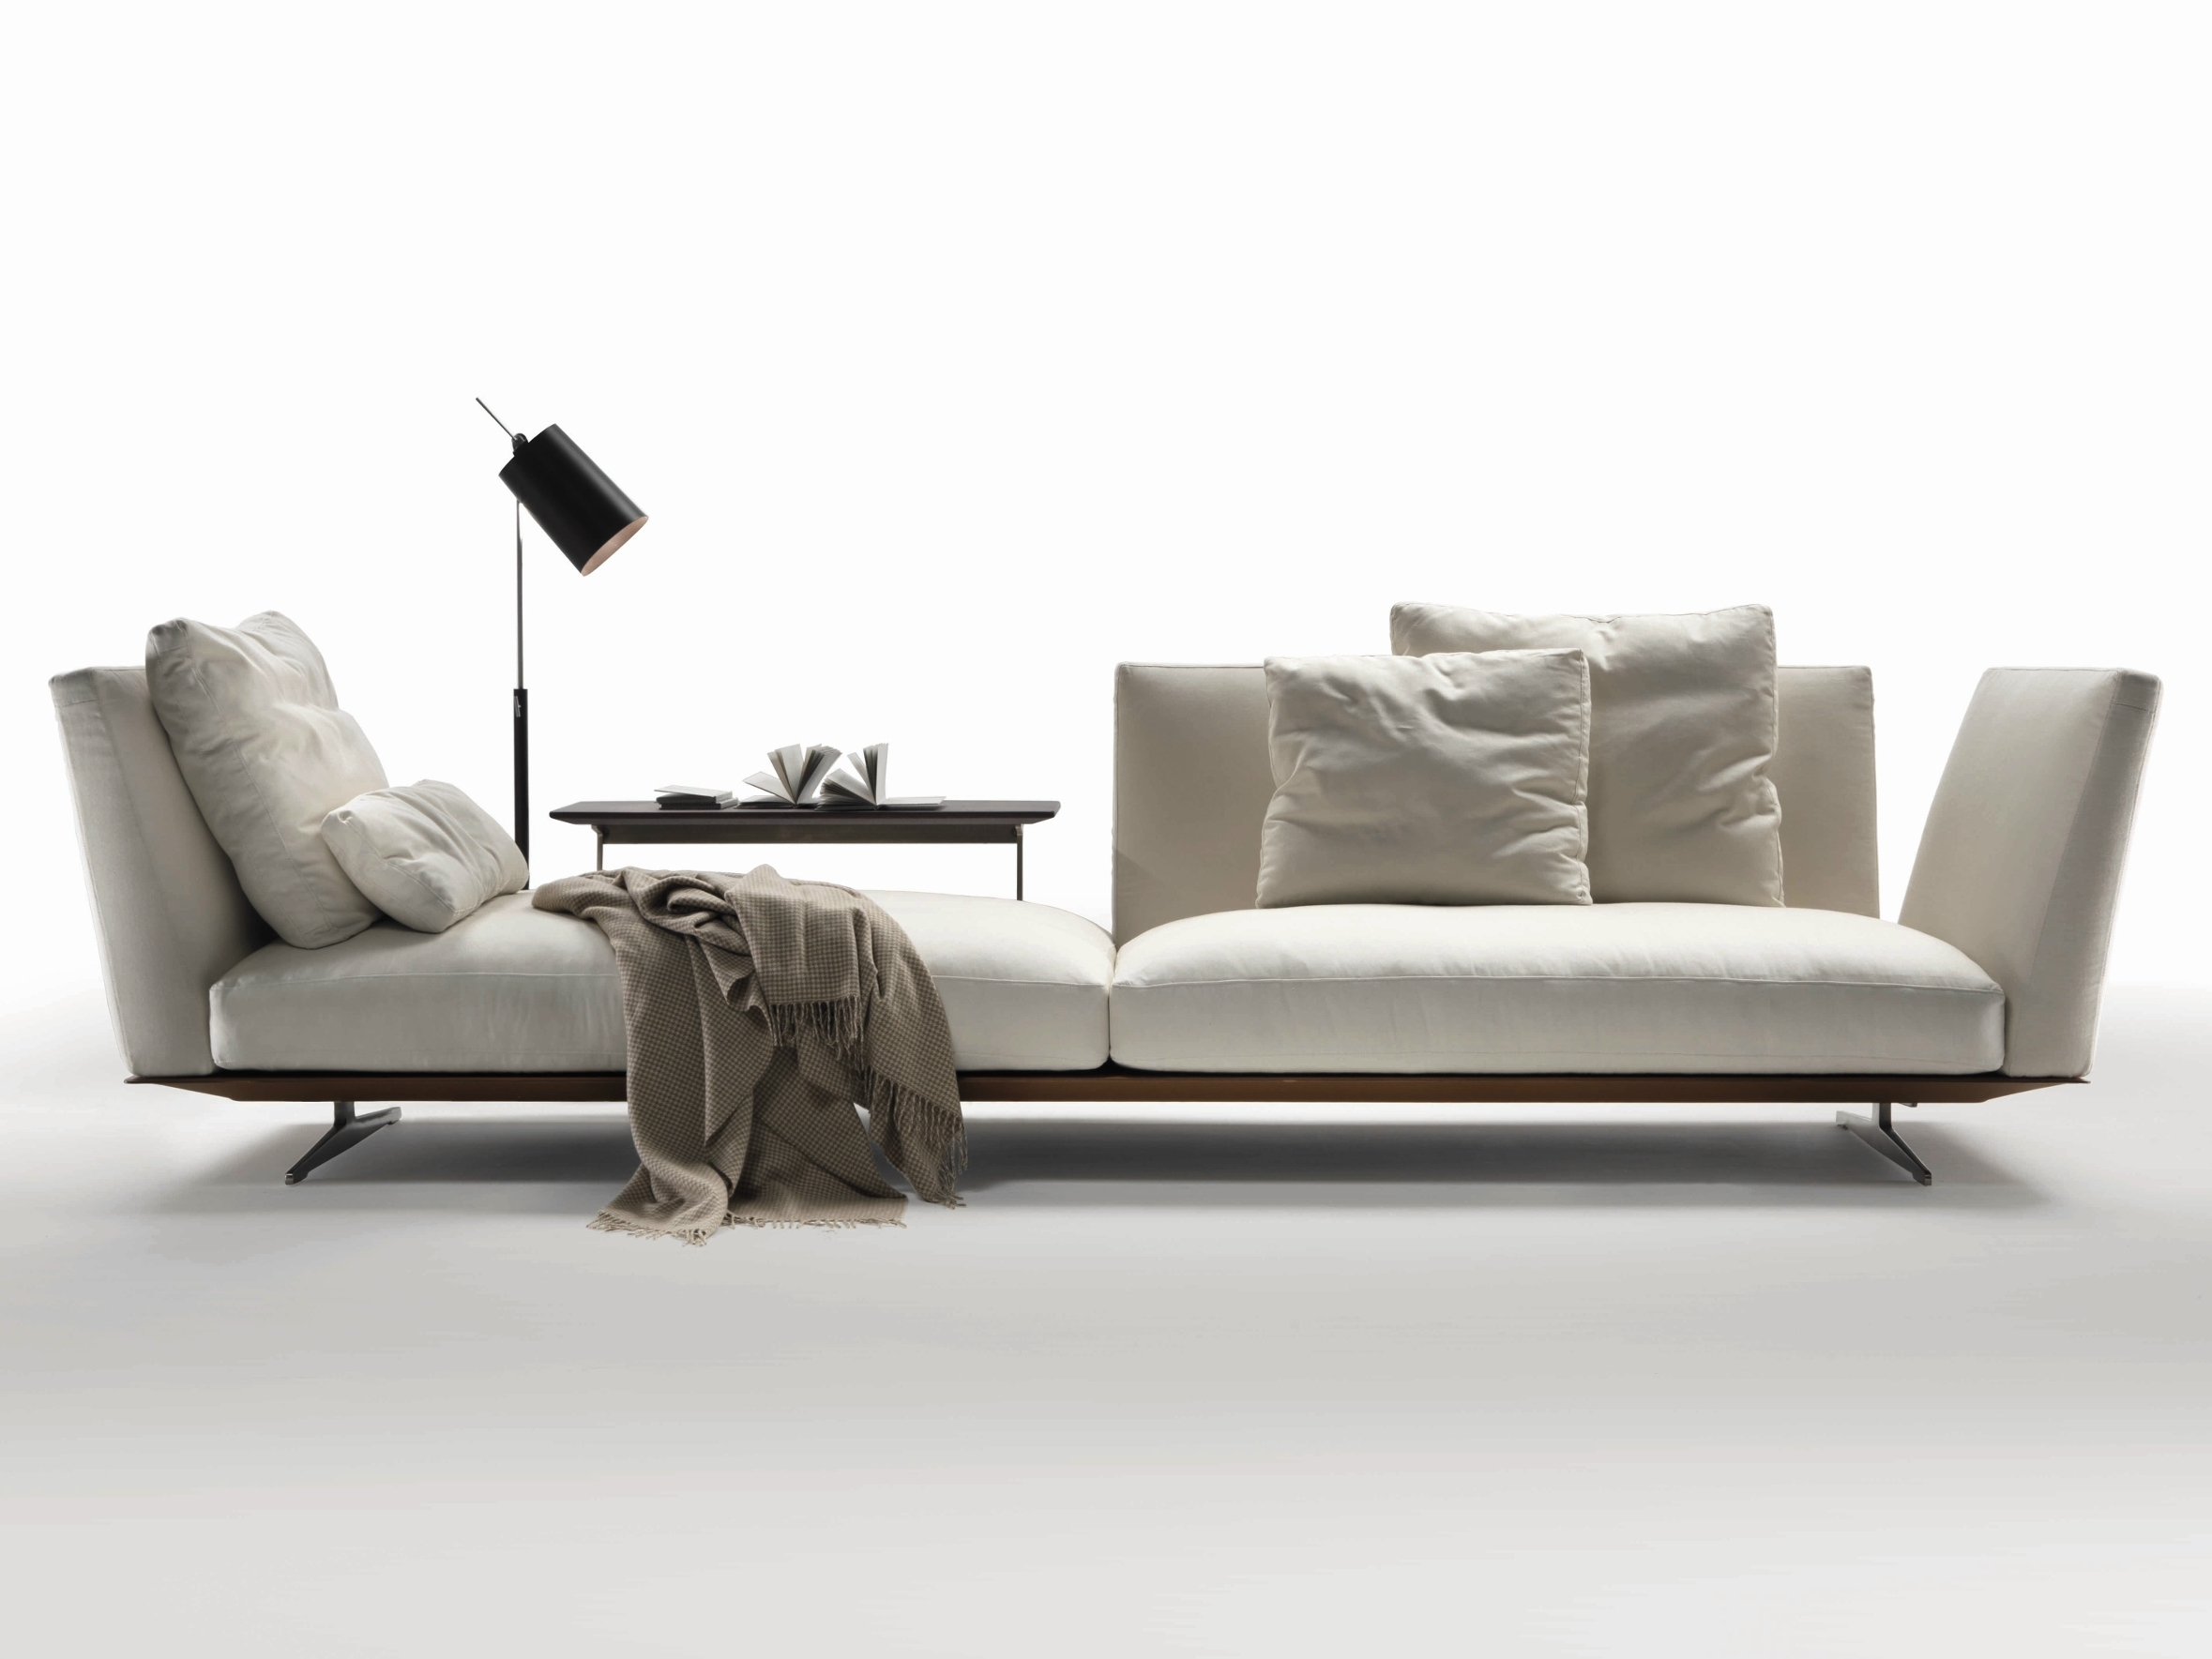 Well Known Flexform Sofas Intended For Flexform Sofas – Home Design Ideas And Pictures (View 11 of 20)